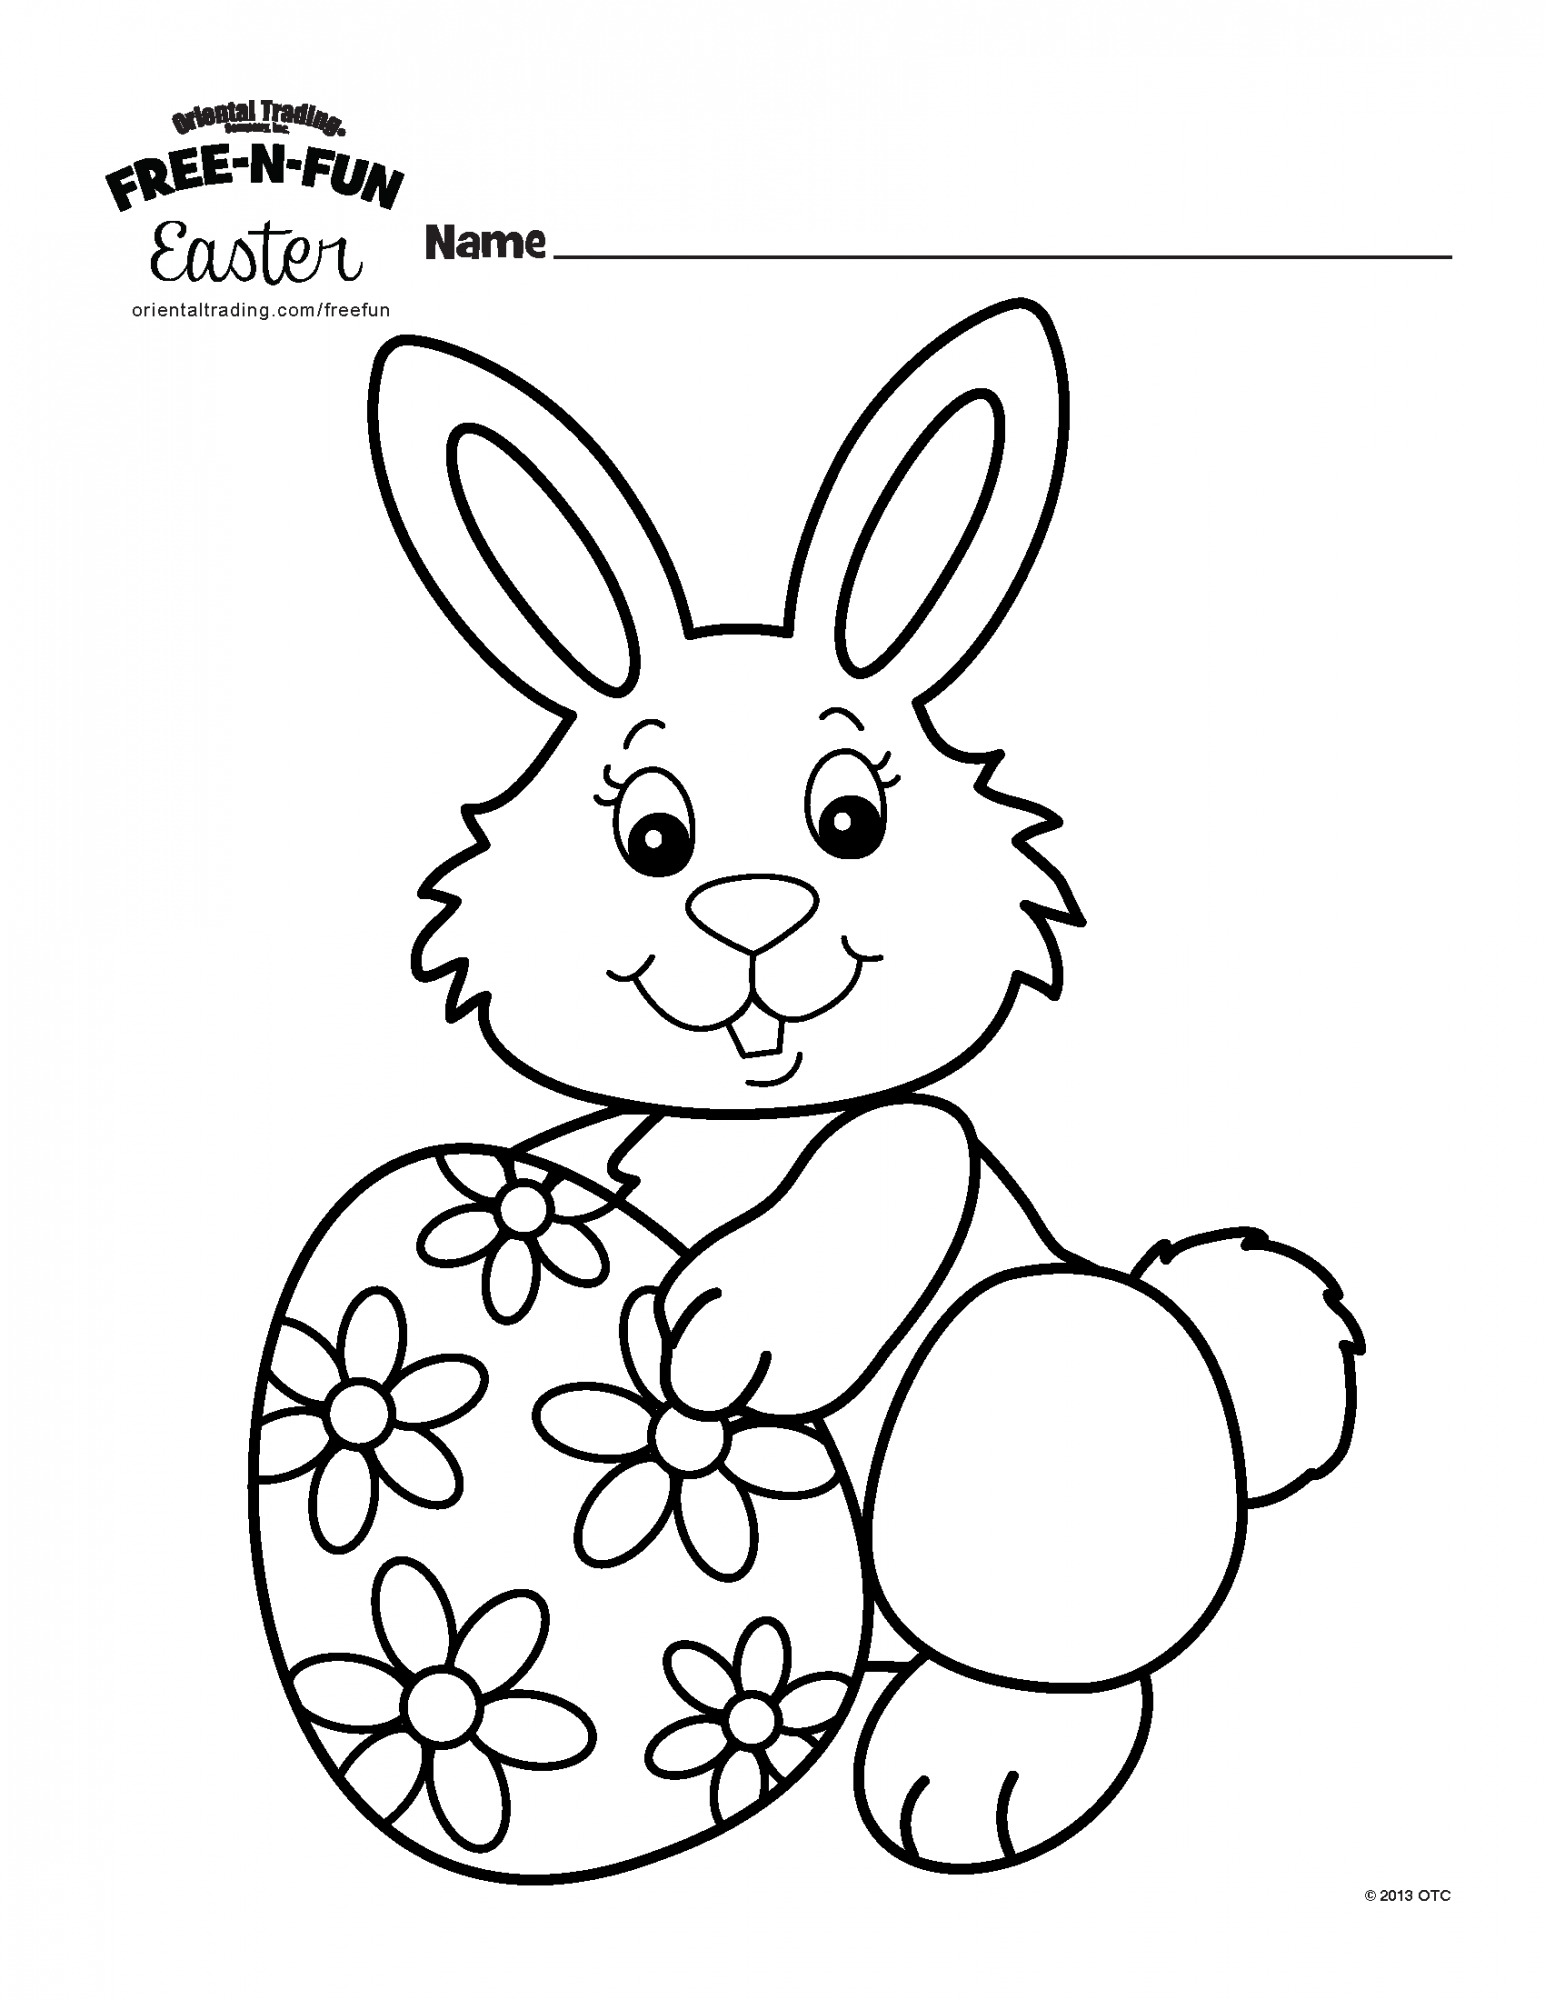 images for coloring for toddlers 9 free printable coloring pages for kids free premium for coloring images for toddlers